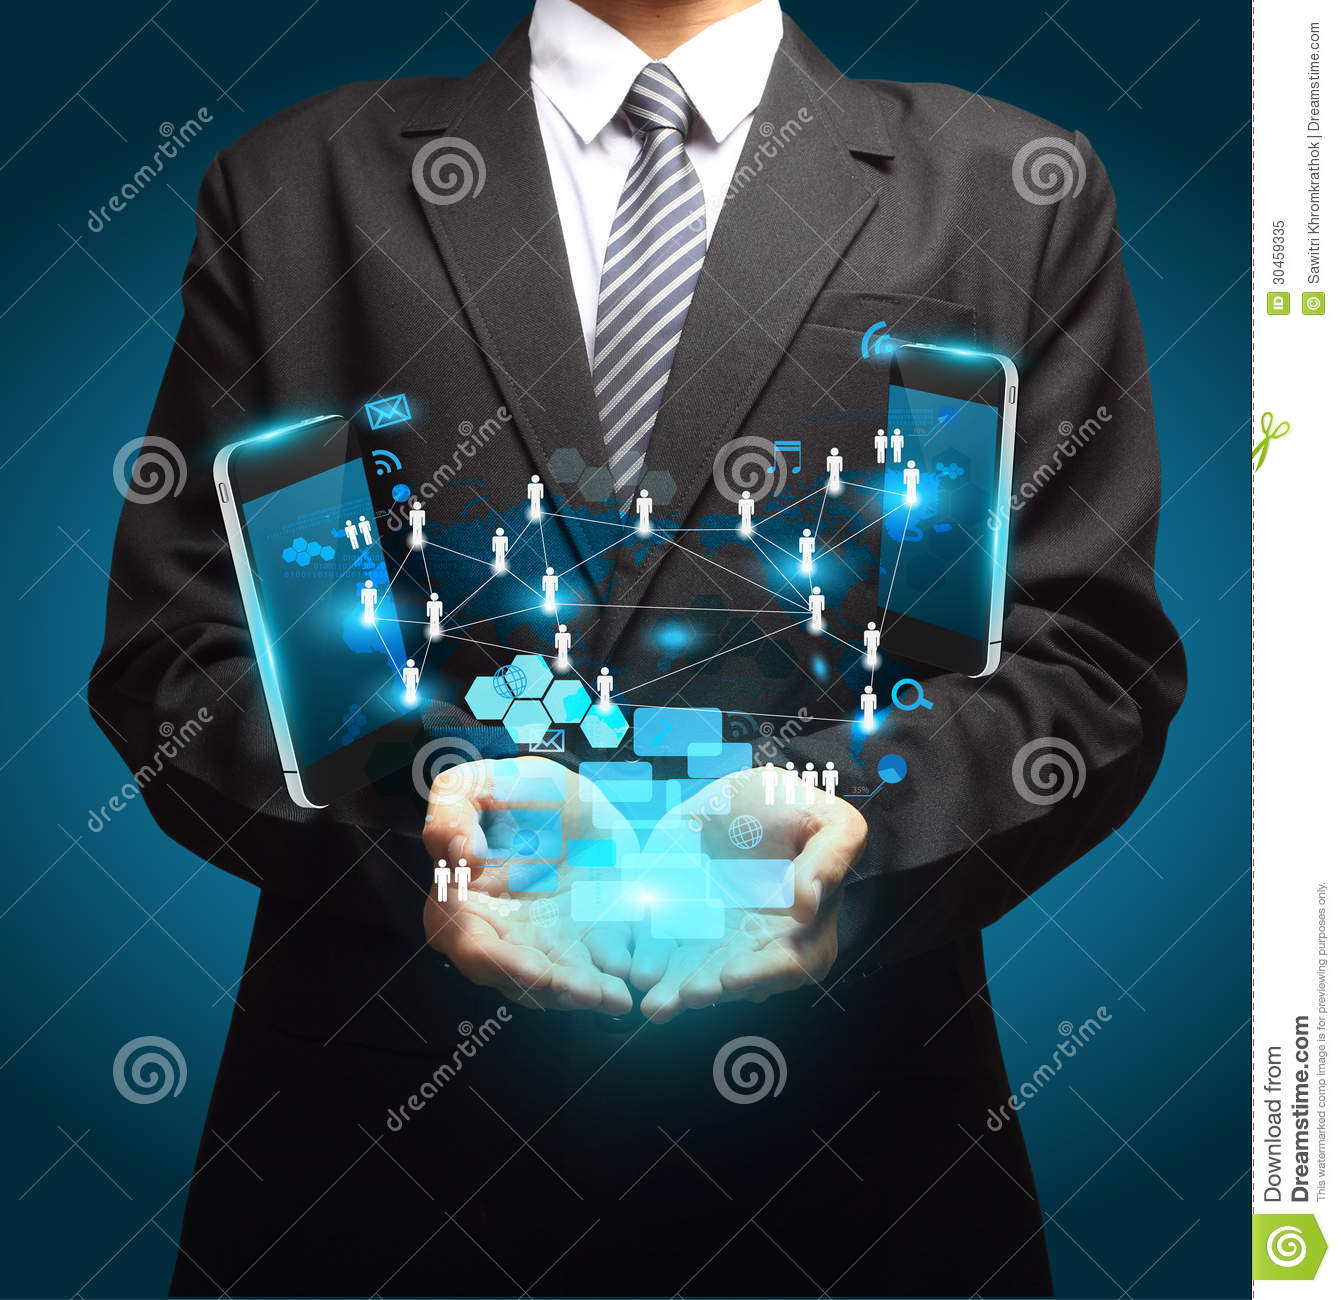 Vector Modern Technology Business Concept Creative  work Information Process Diagram Illustration Template Design also Mobile Phones Technology Business Hand Concept Creative  work Information Process Diagram likewise Ittosxknowledgearea Phpapp Thumbnail as well Tuckmangroupstagesmodel also Businessflowprocess Stagespowerpointtemplates Phpapp Thumbnail. on email communication process diagram